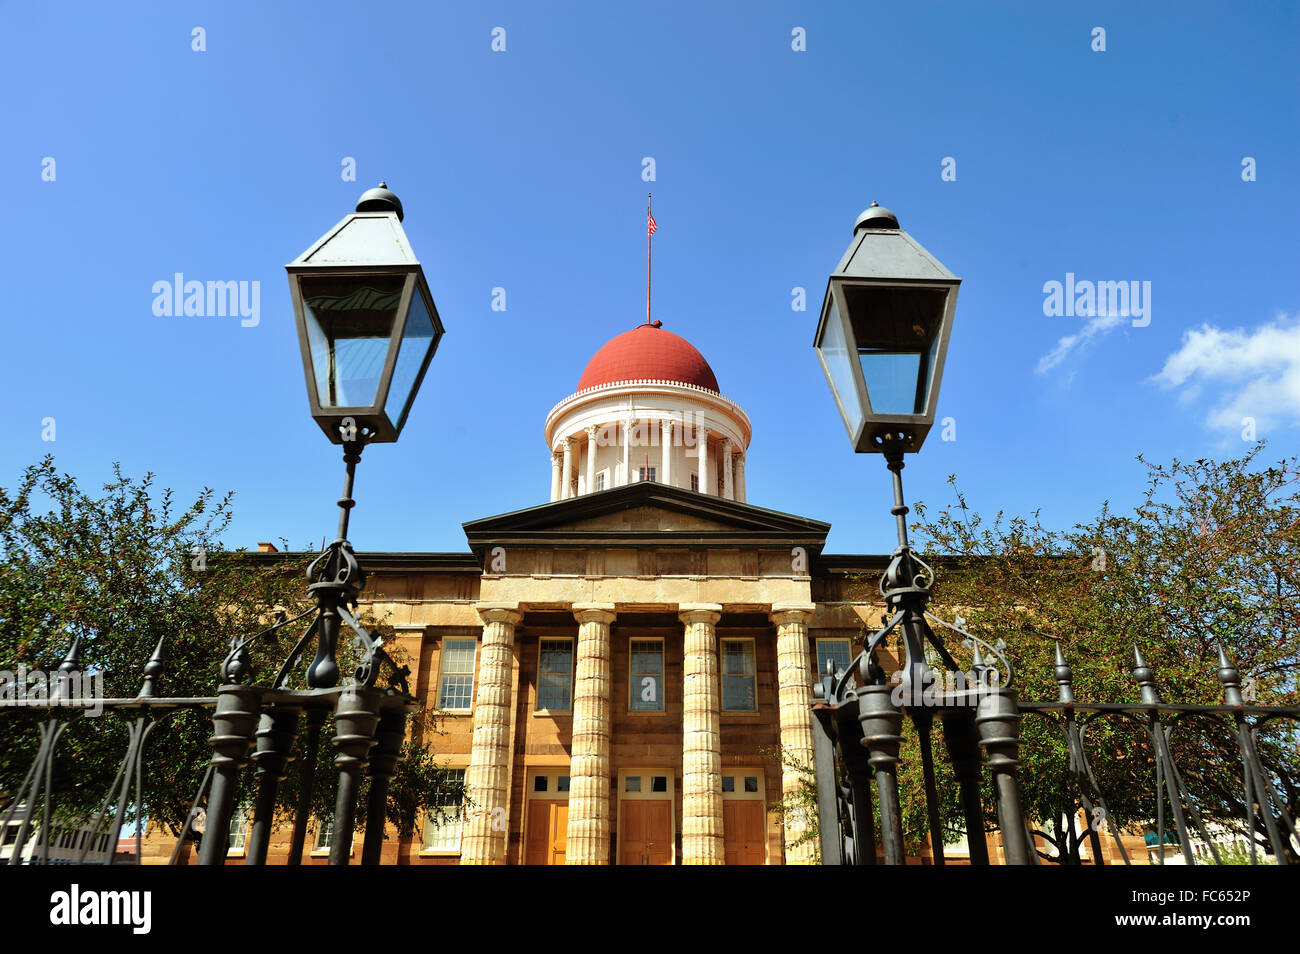 The Old State Capitol Building entrance and dome as seen past its entry gate and vintage lights in Springfield, - Stock Image